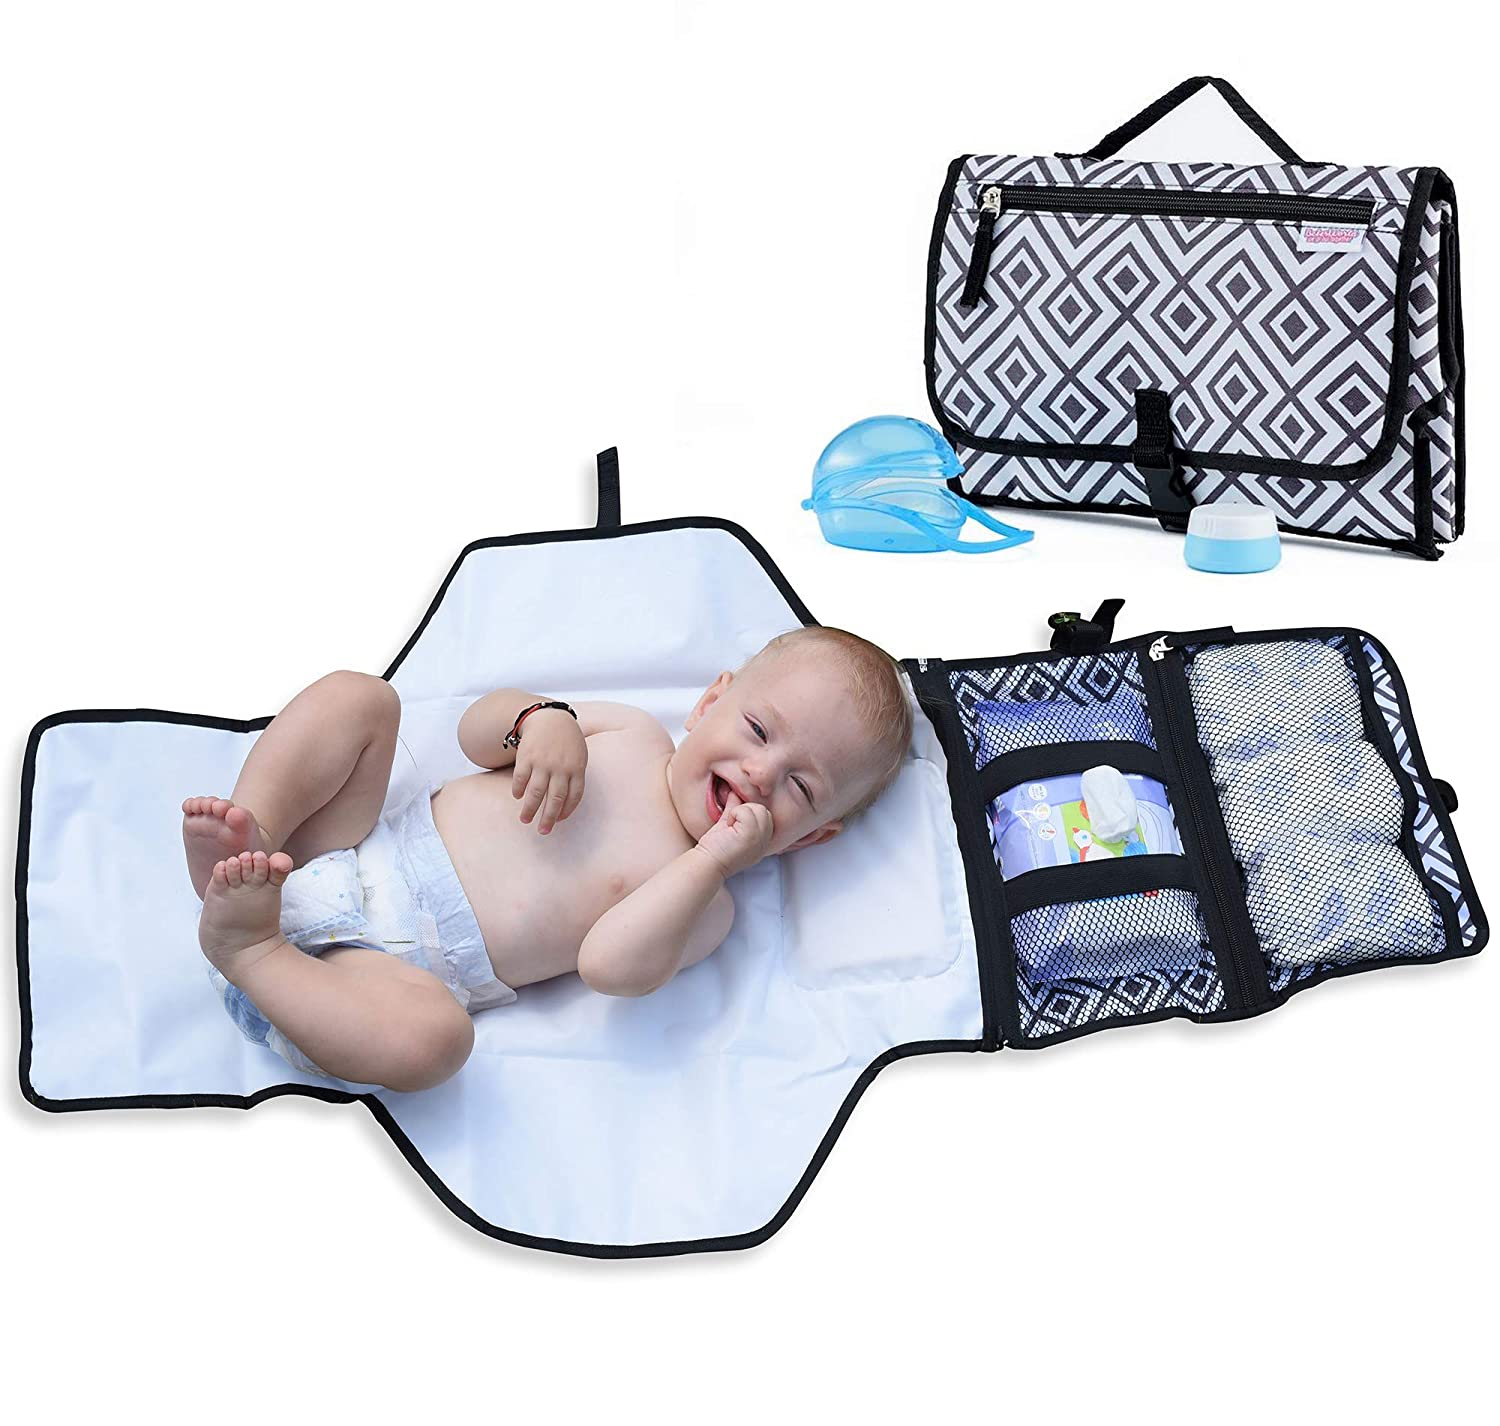 Portable Baby Changing Mat Travel Folding Diaper Nappy Changer Wipes Pad New FI